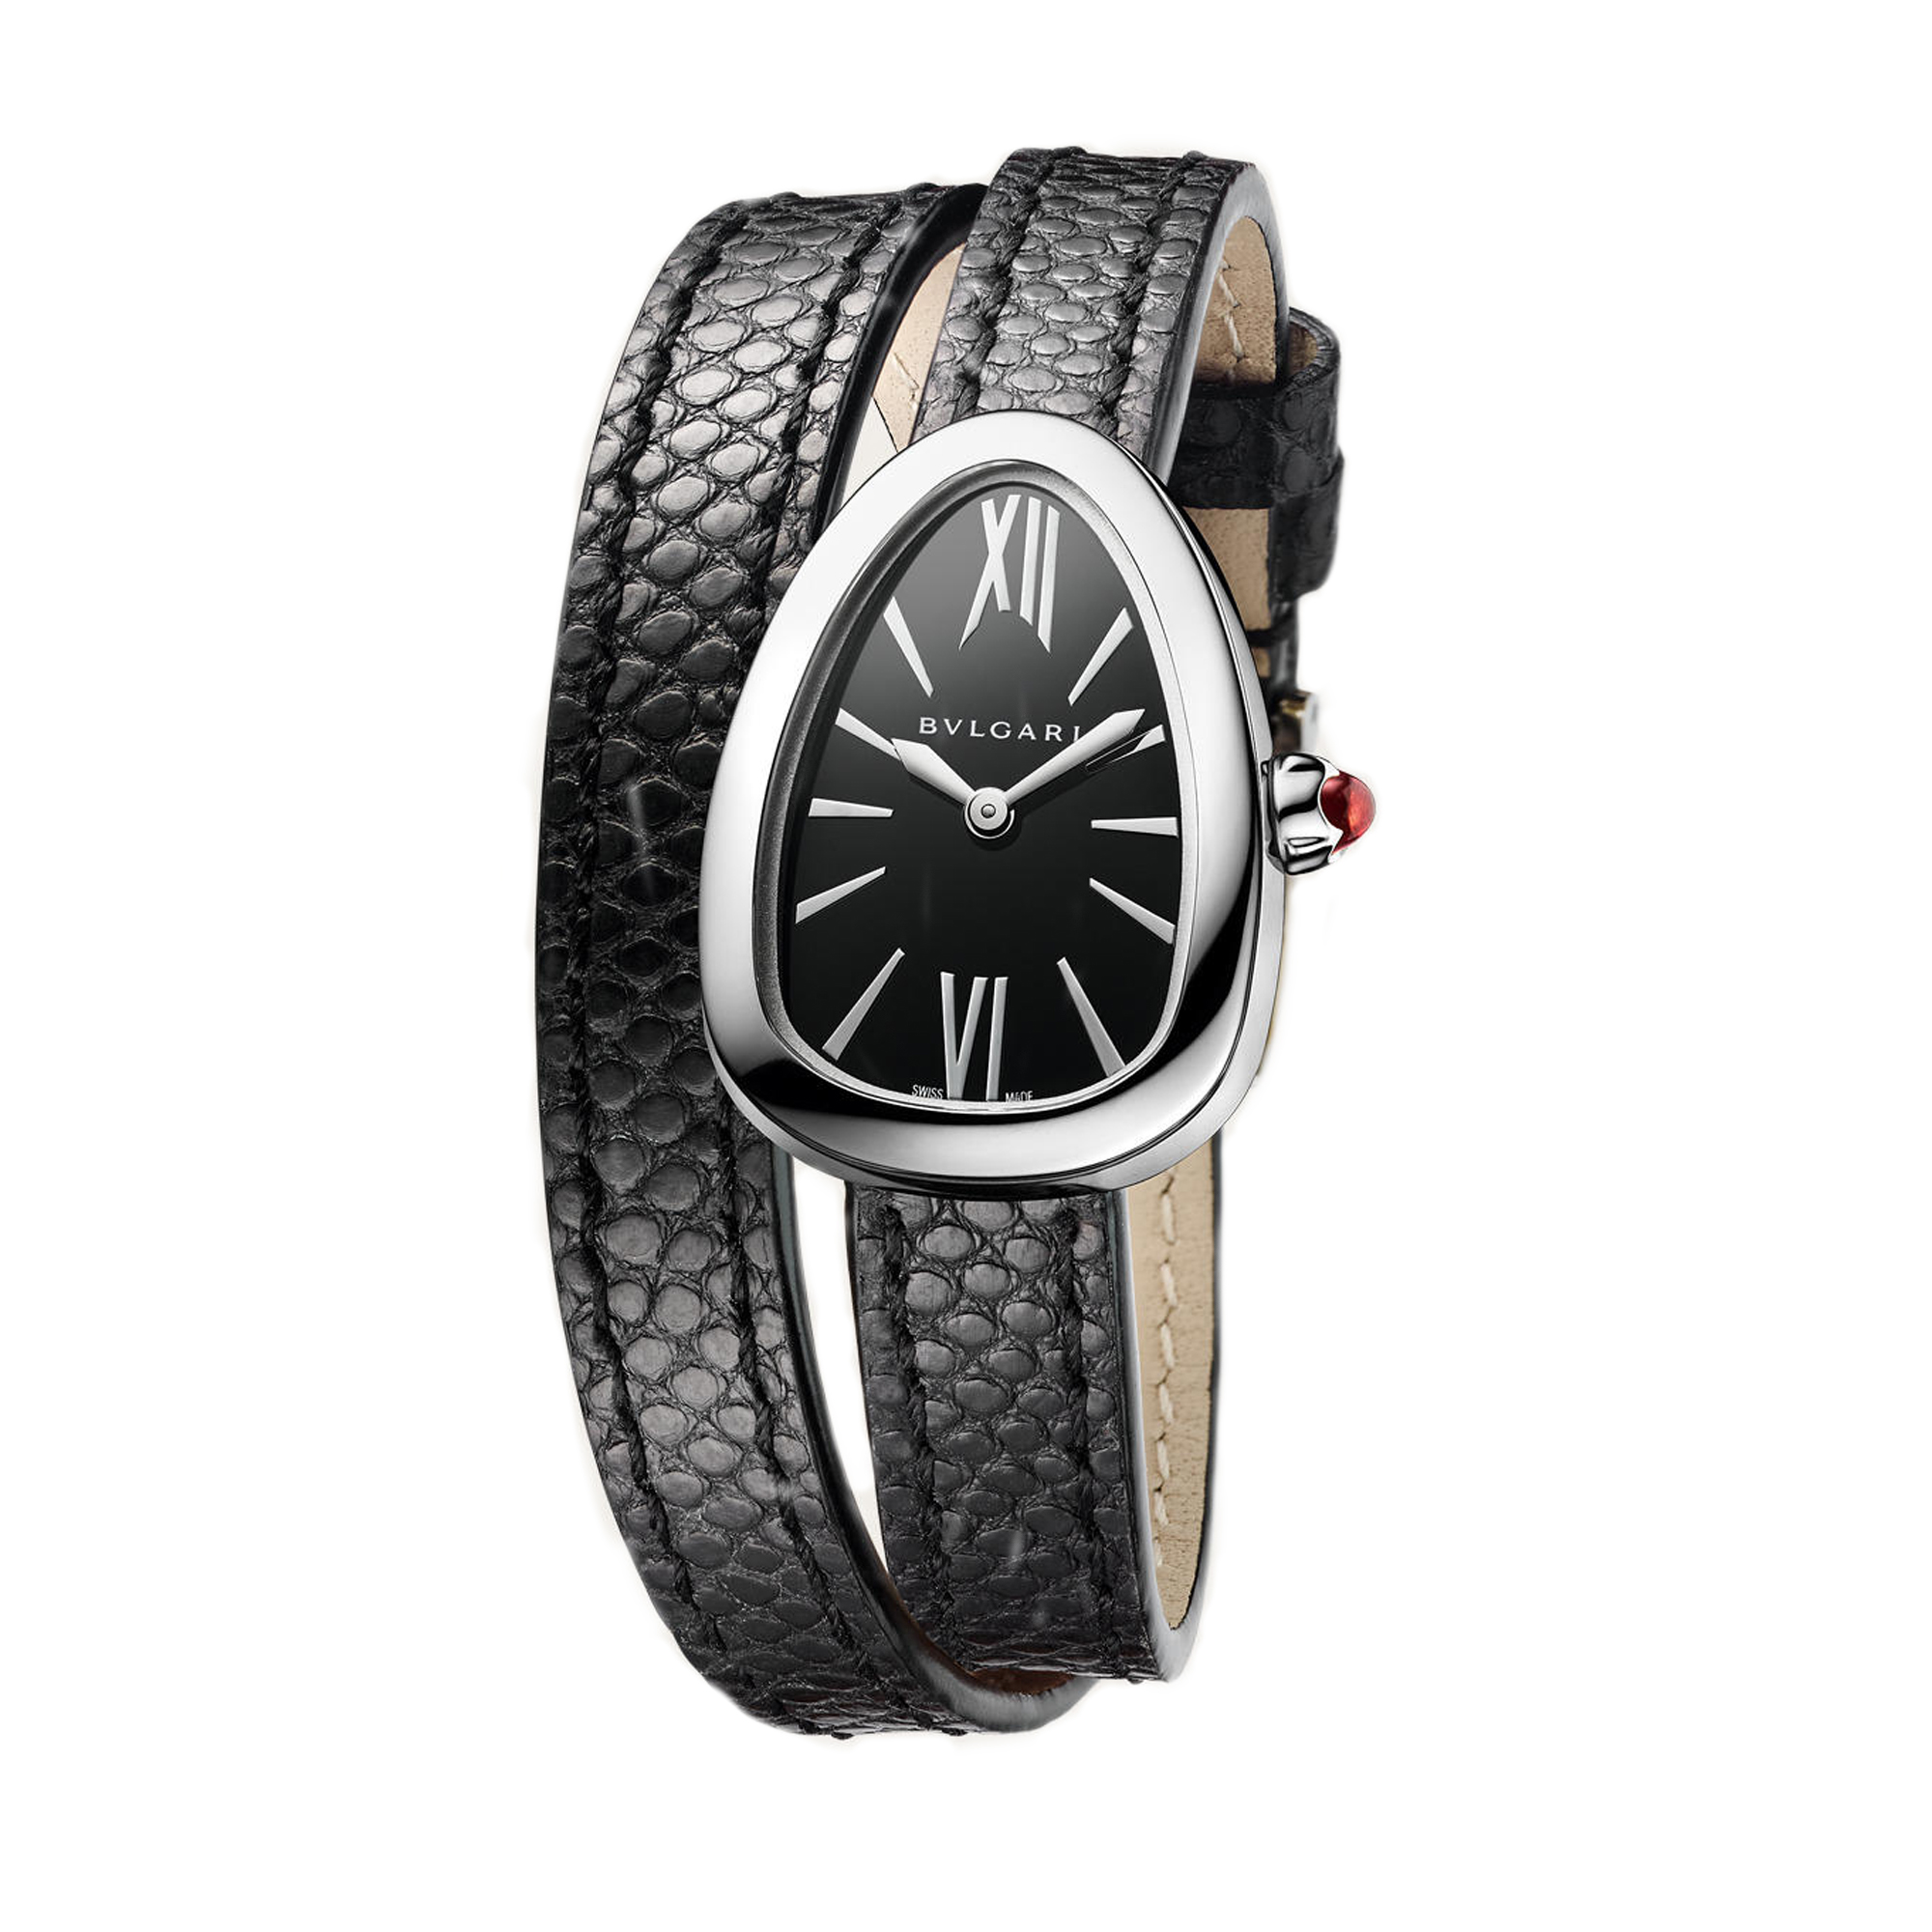 Bulgari Serpenti Stainless Steel 27mm Black Watch